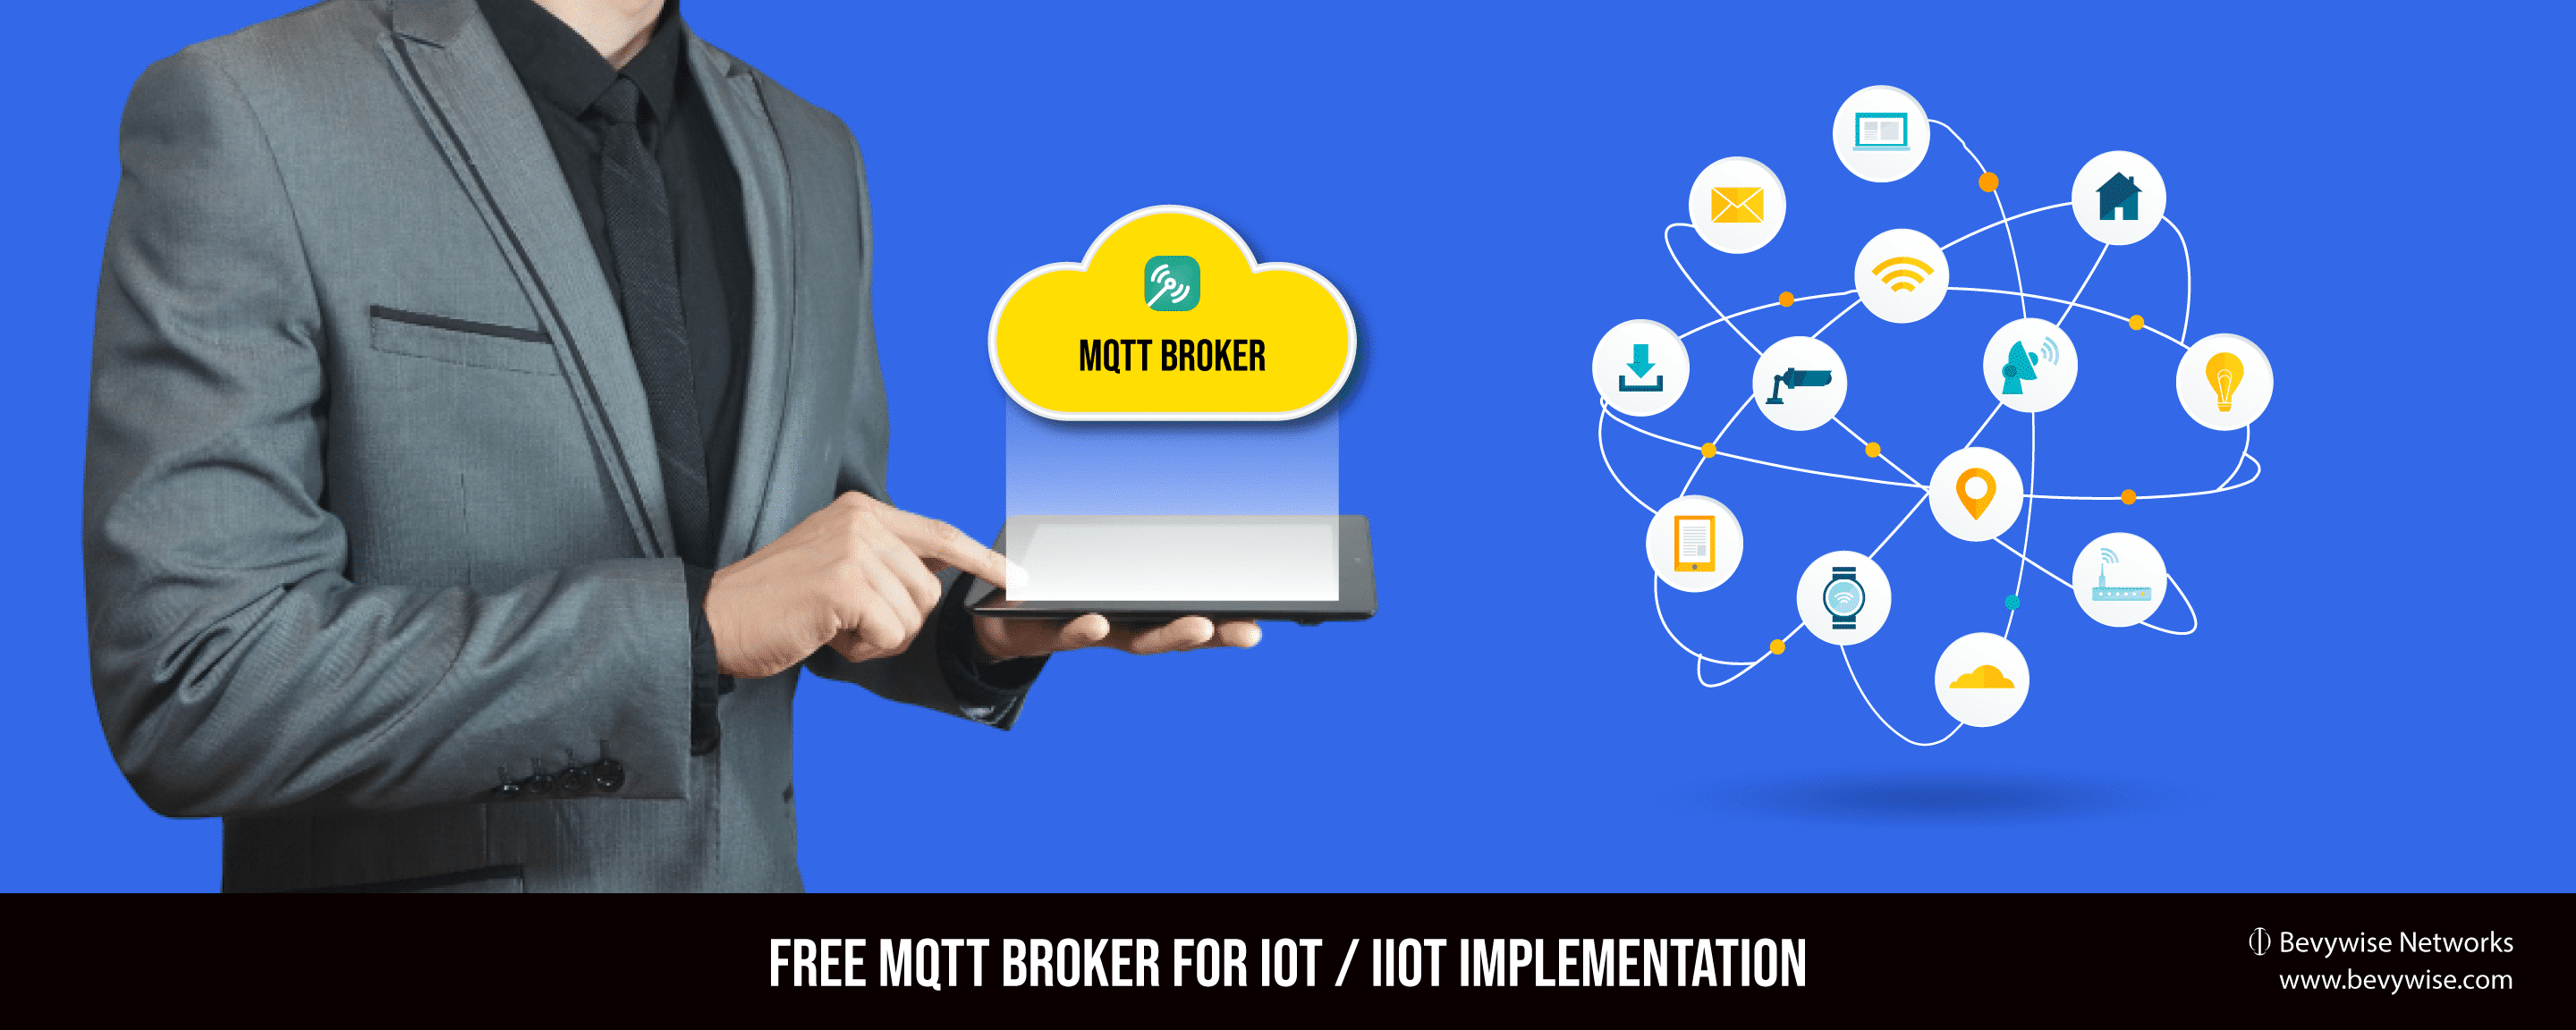 Free MQTT Broker for IoT / IIoT Implementation